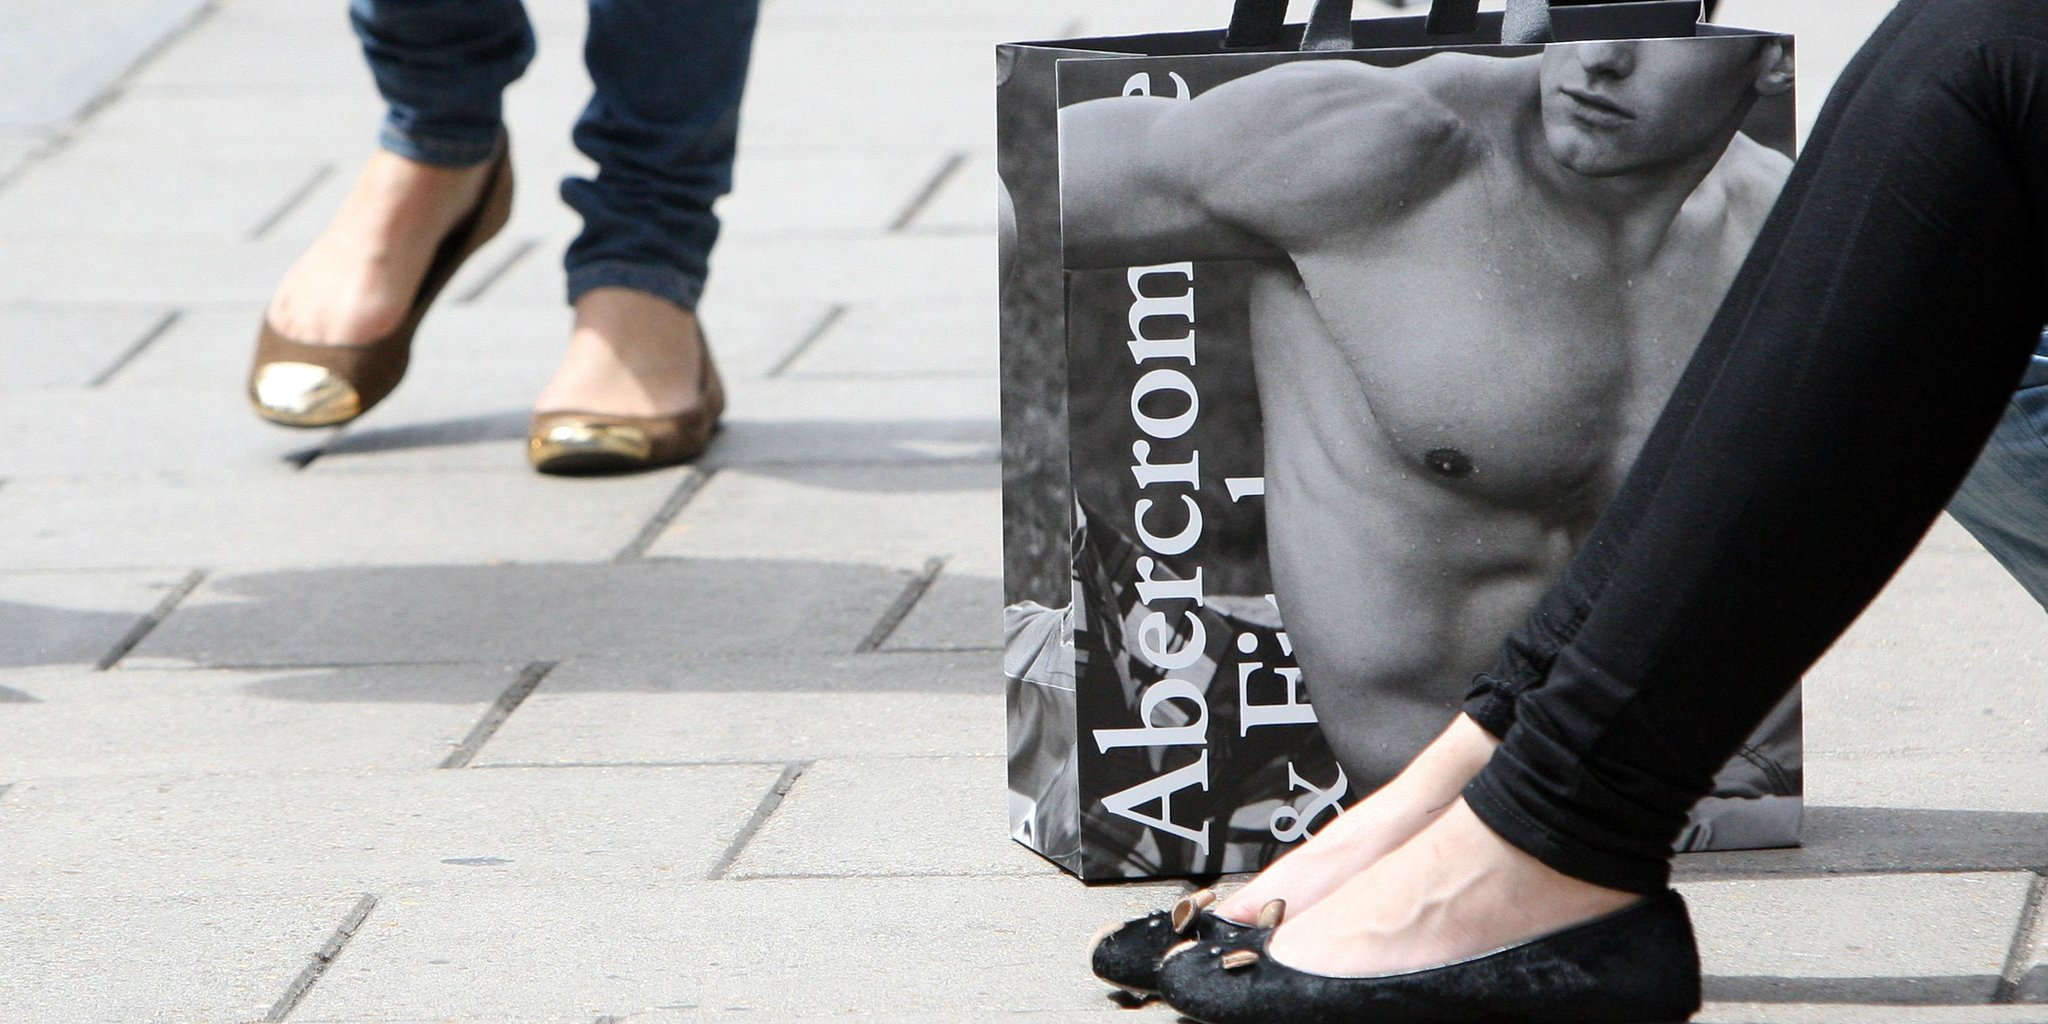 ICYMI: Abercrombie's hot salesclerk policy is over and sexy photos are disappearing from bags http://t.co/MV0jXKaCul http://t.co/CdXlCaE0PX